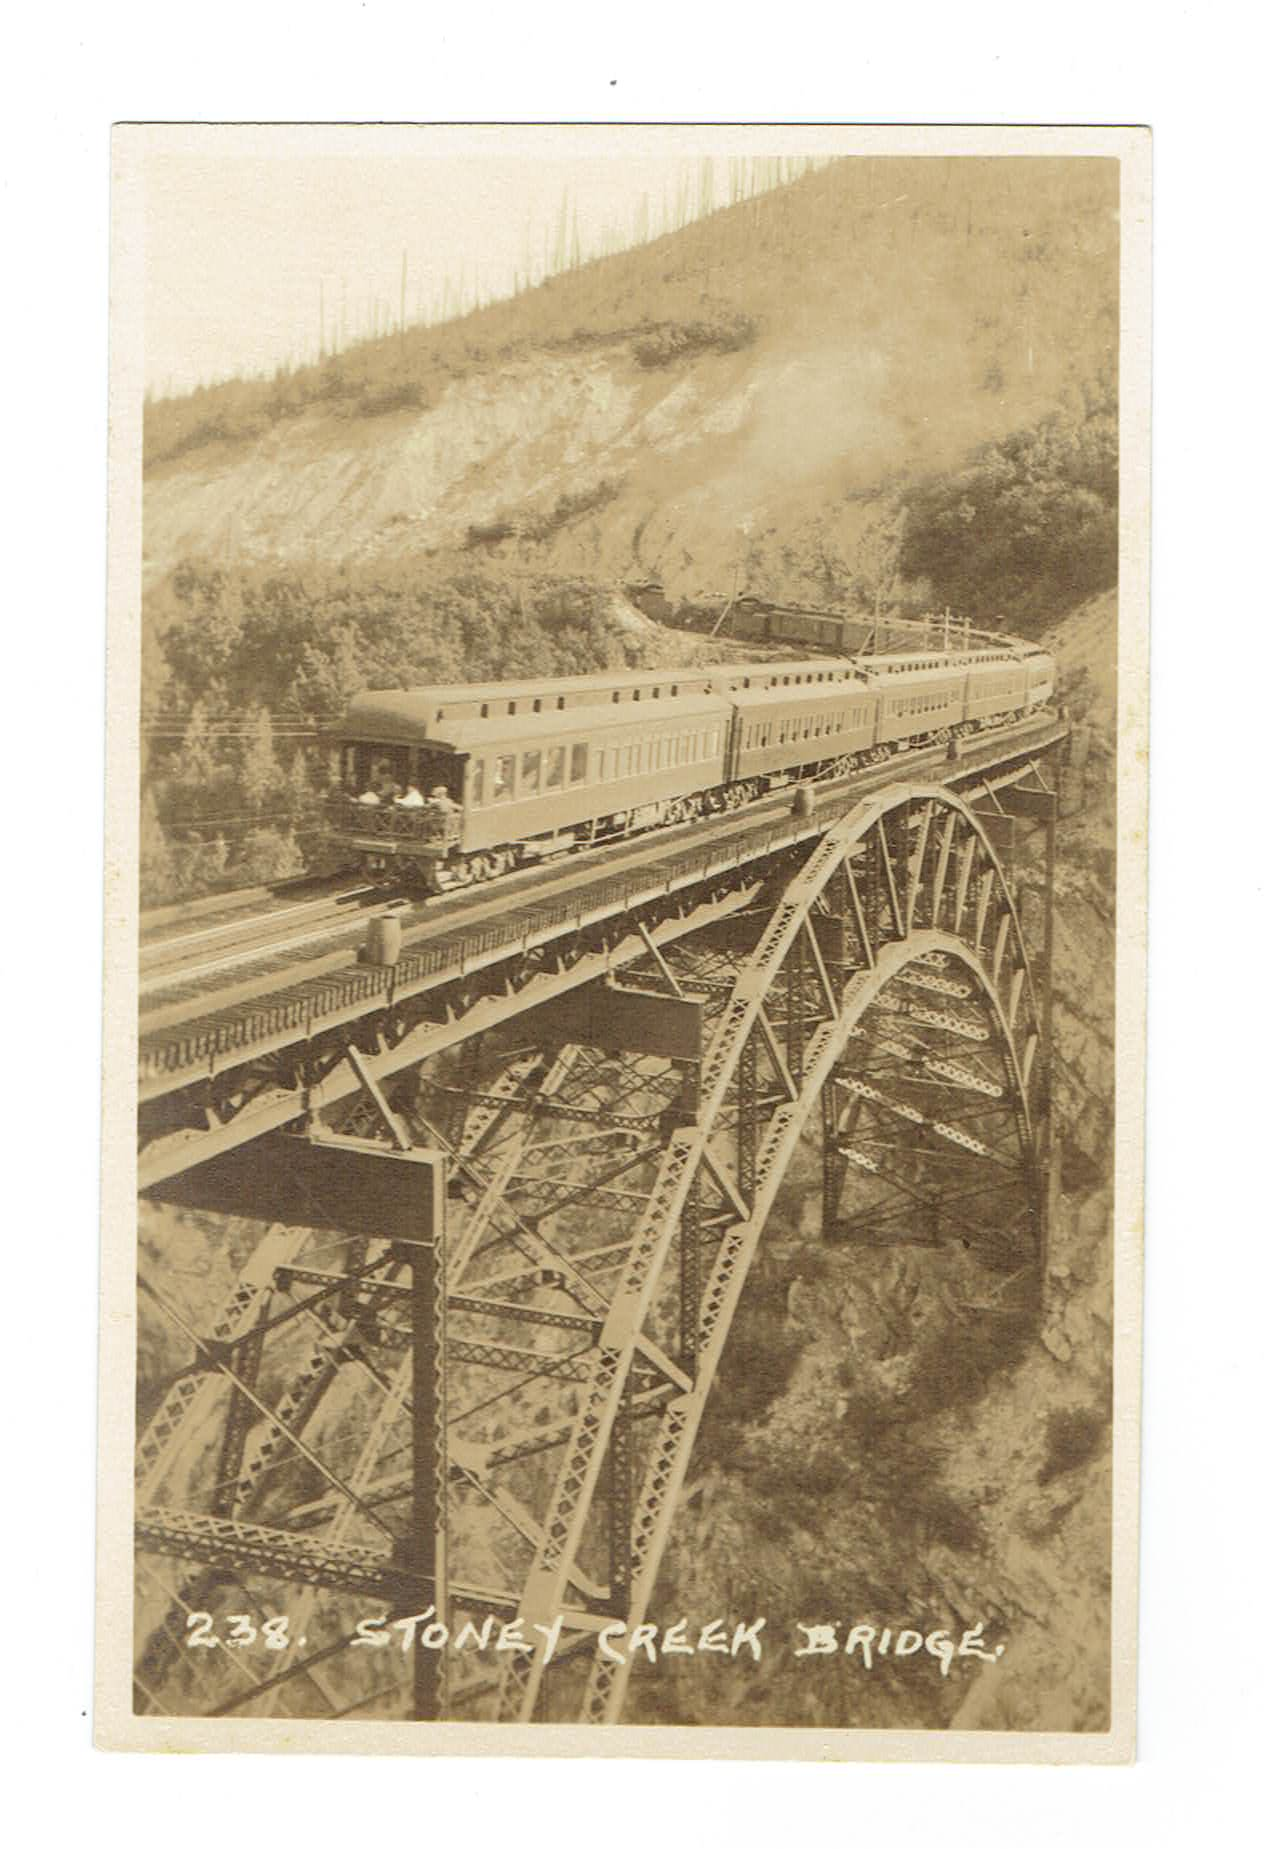 B.C., REVELSTOKE. STONEY CREEK BRIDGE. RPPC POSTCARD. CANADIAN PACIFIC RAILWAY.